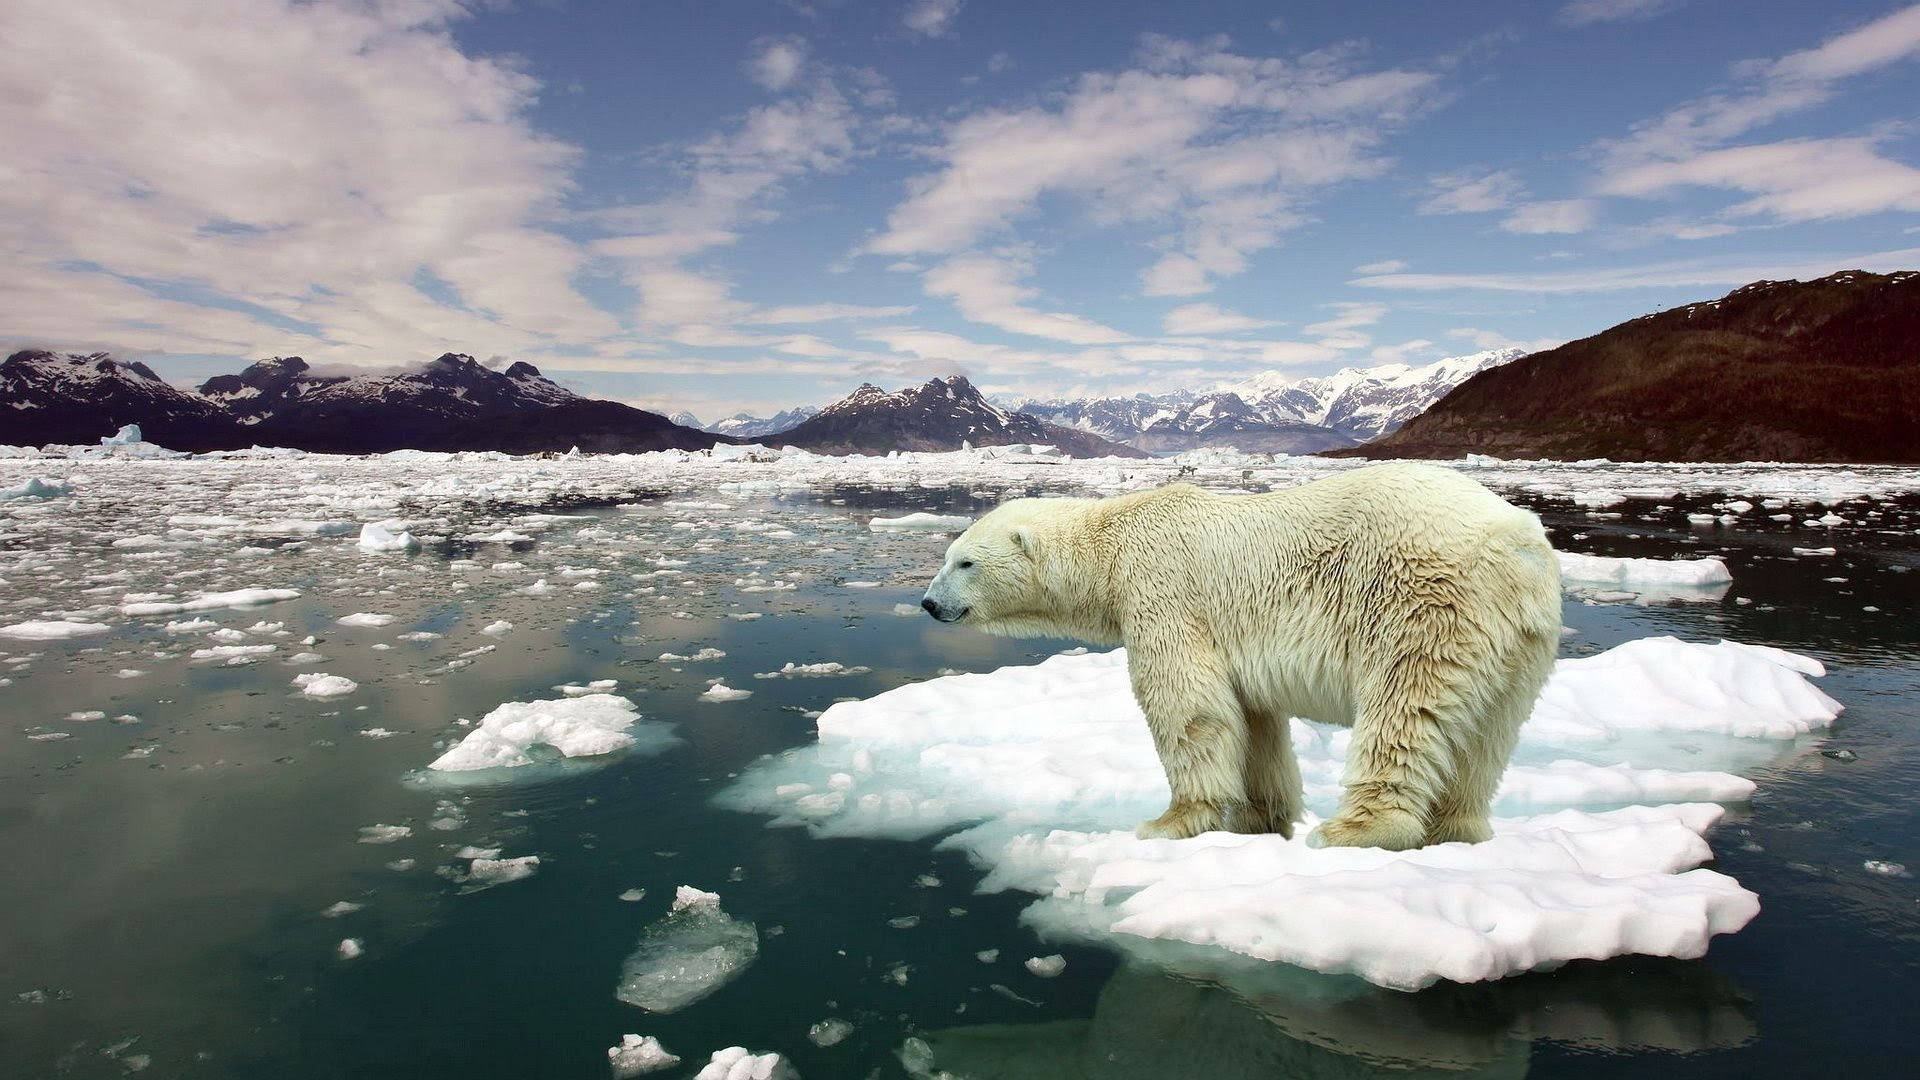 Effects of Global Warming HD IMages